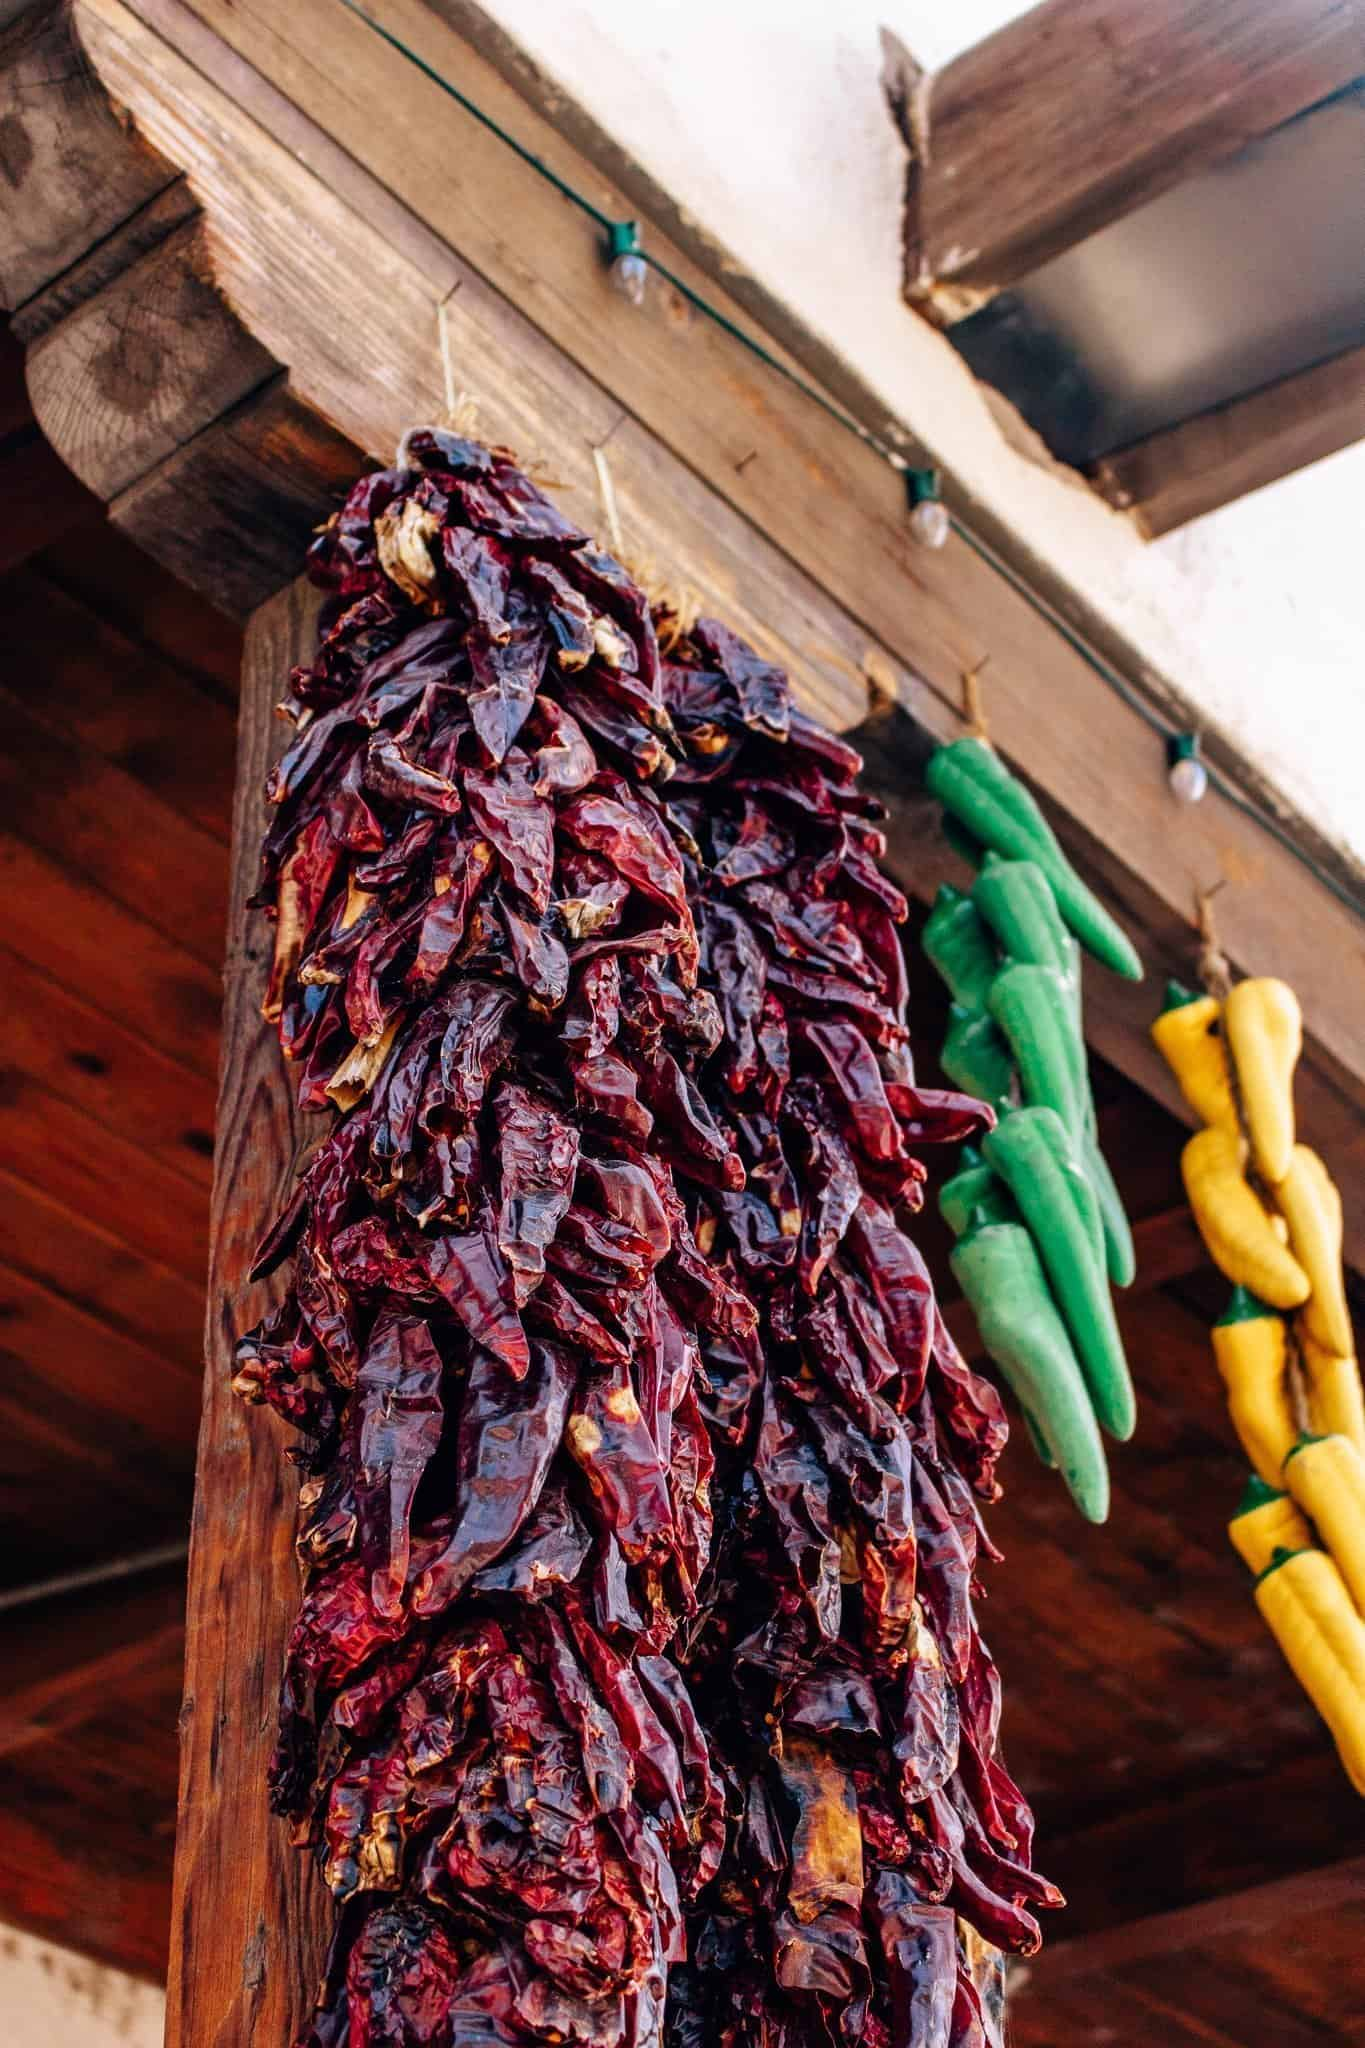 Drying Chiles in Albuquerque Old Town - The Next Trip